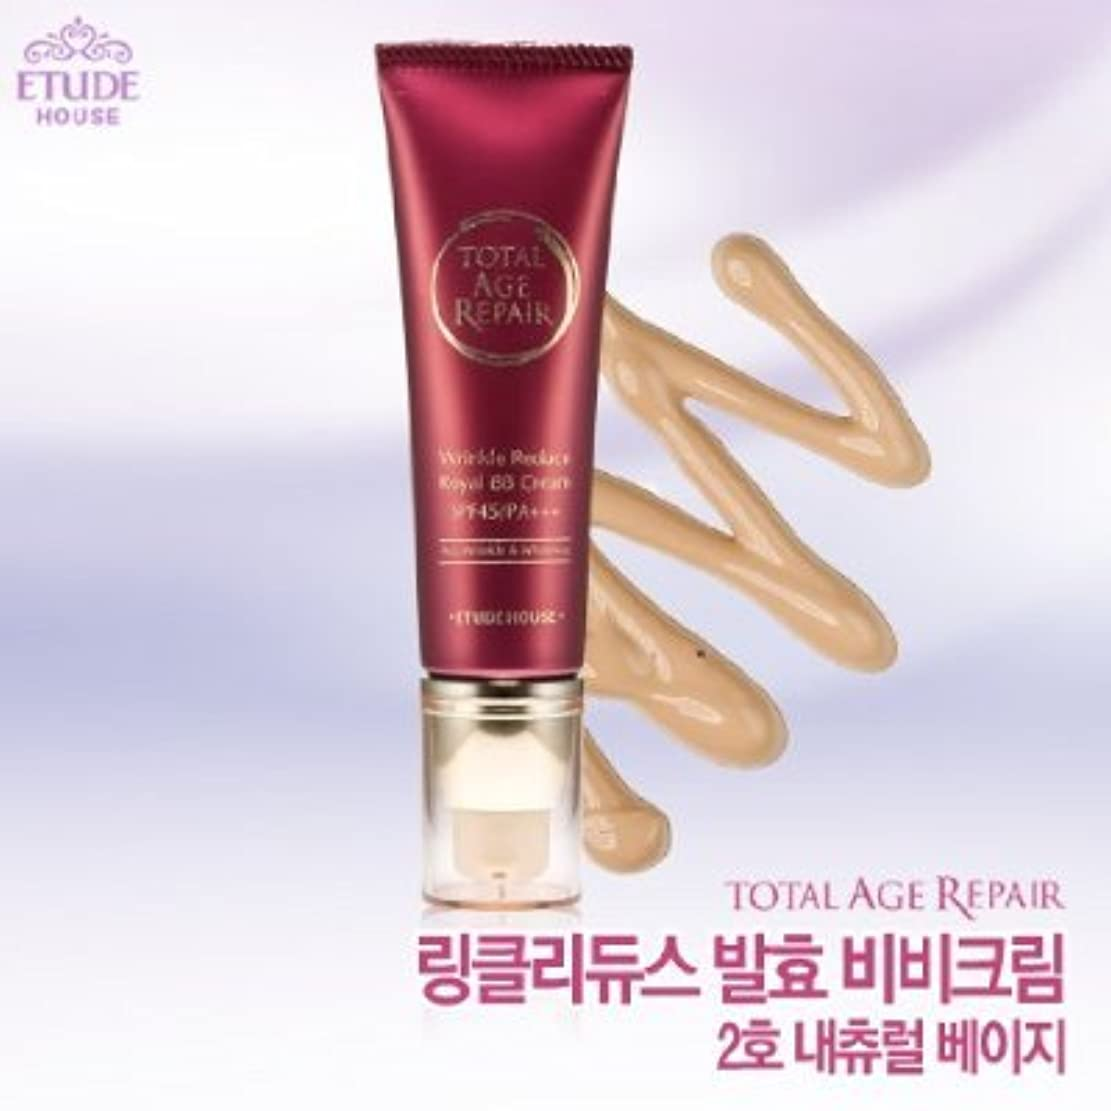 散る文字レルムEtude House Total Age Repair Wrinkle Reduce Royal BB Cream (SPF45/PA++) #2 Natural Beige